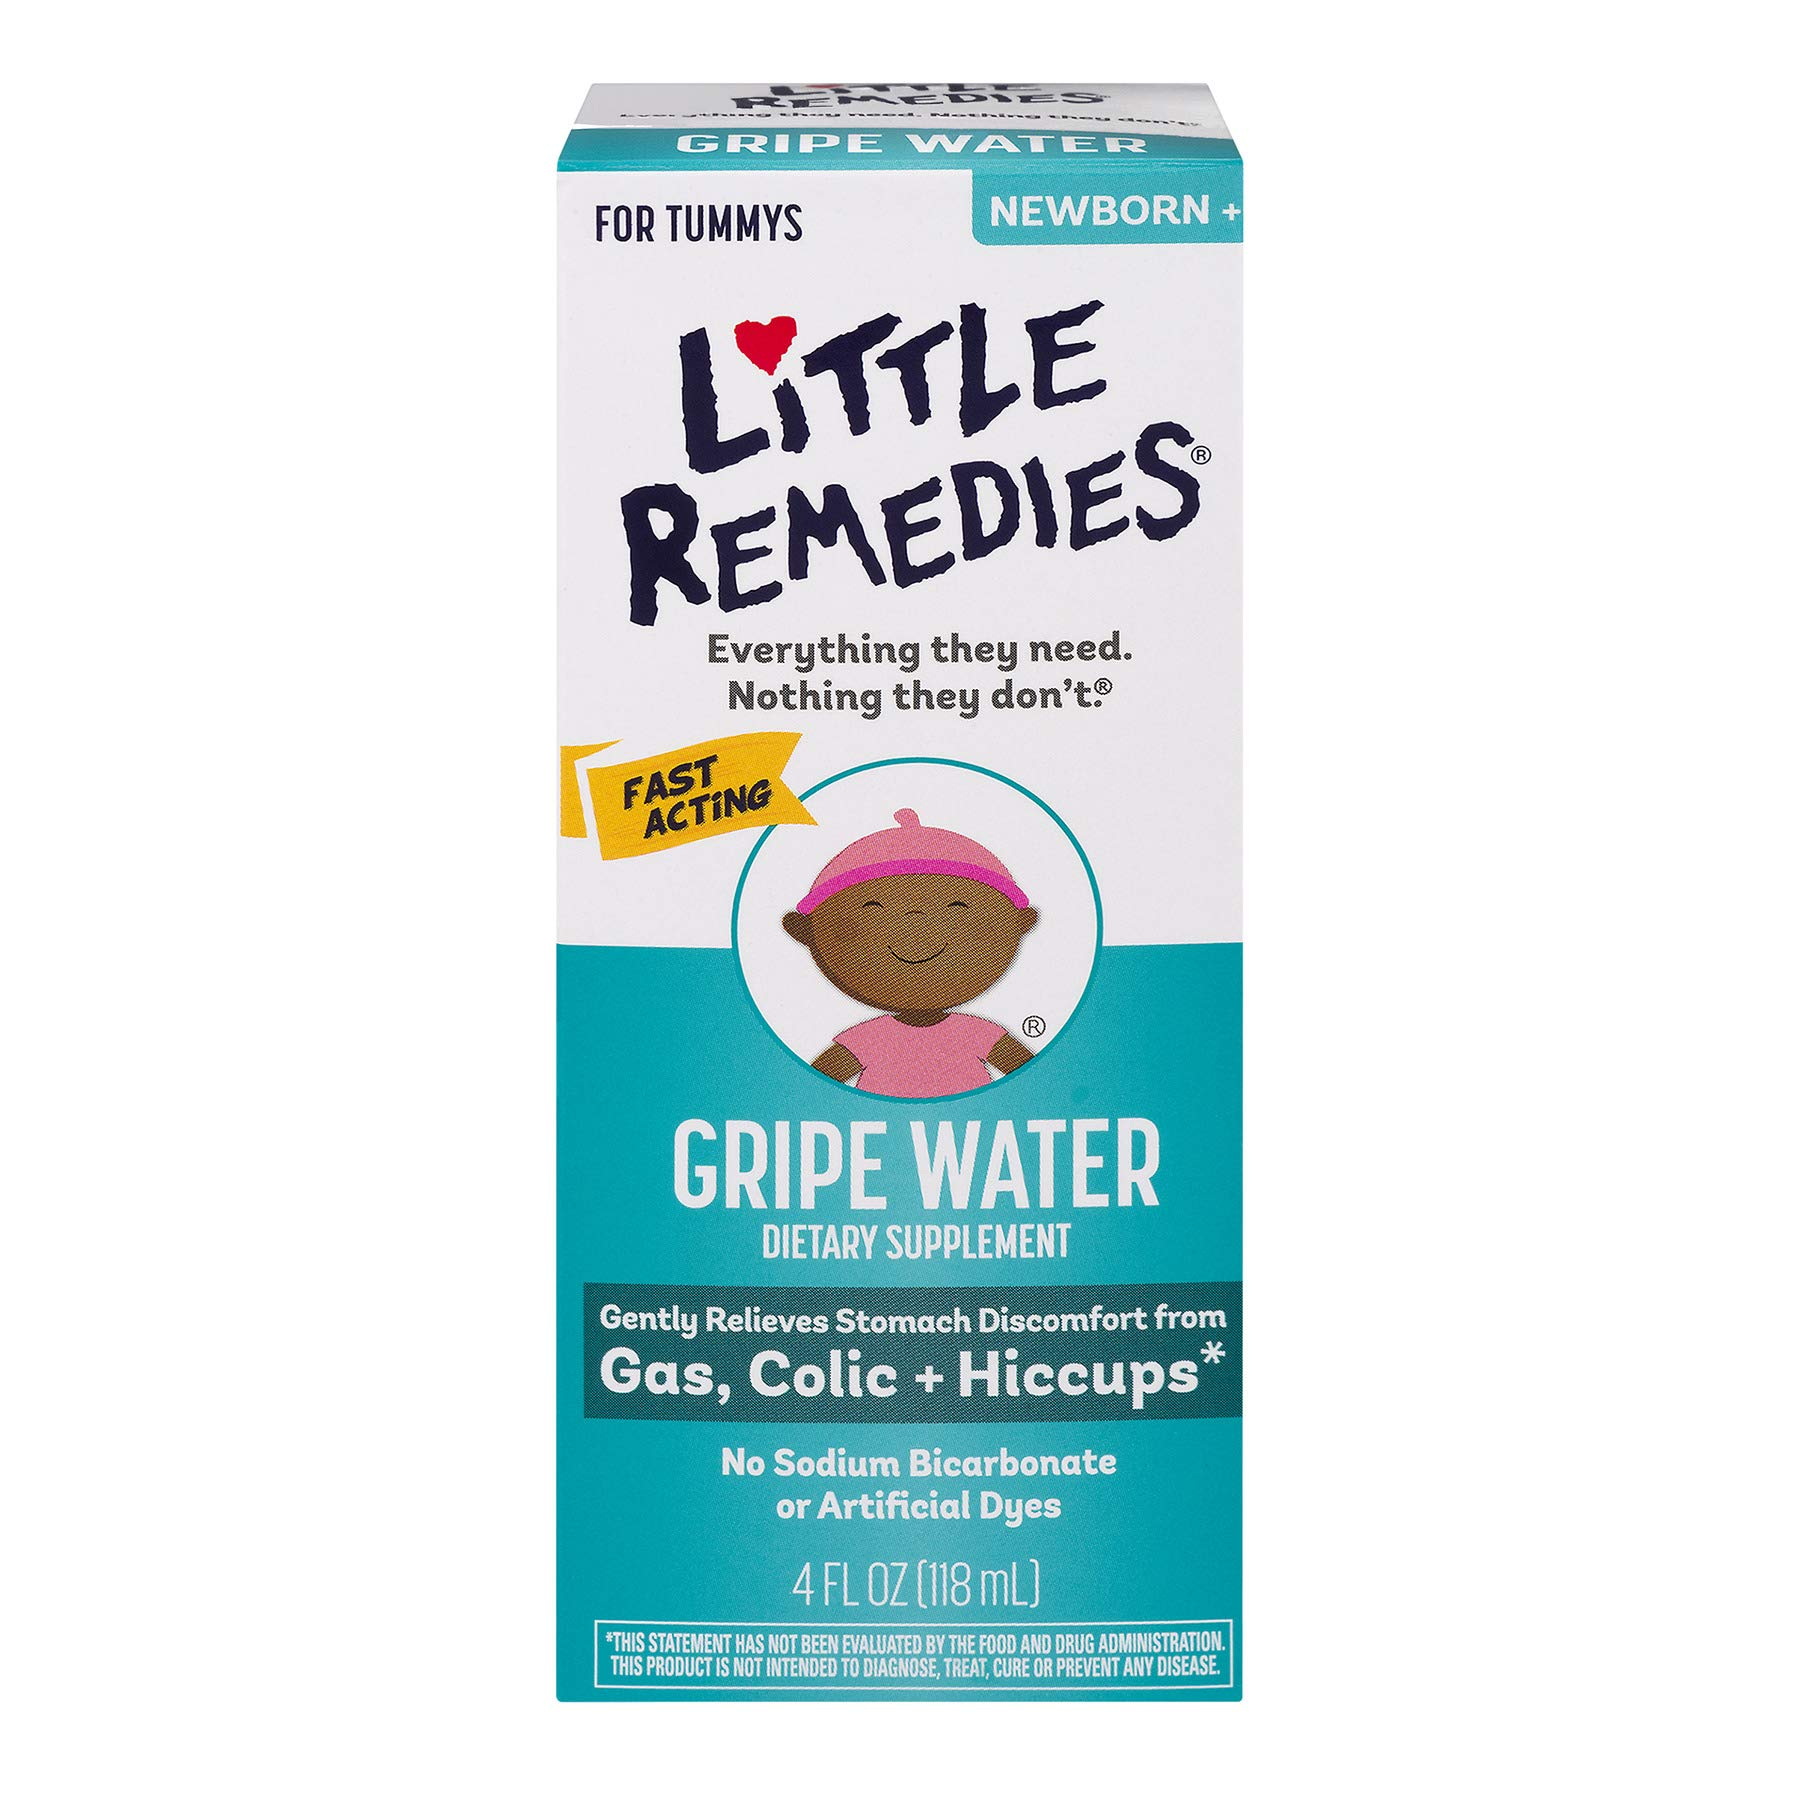 Little Remedies Tummys Gripe Water, 4 Ounce, 2 Pack by Little Remedies